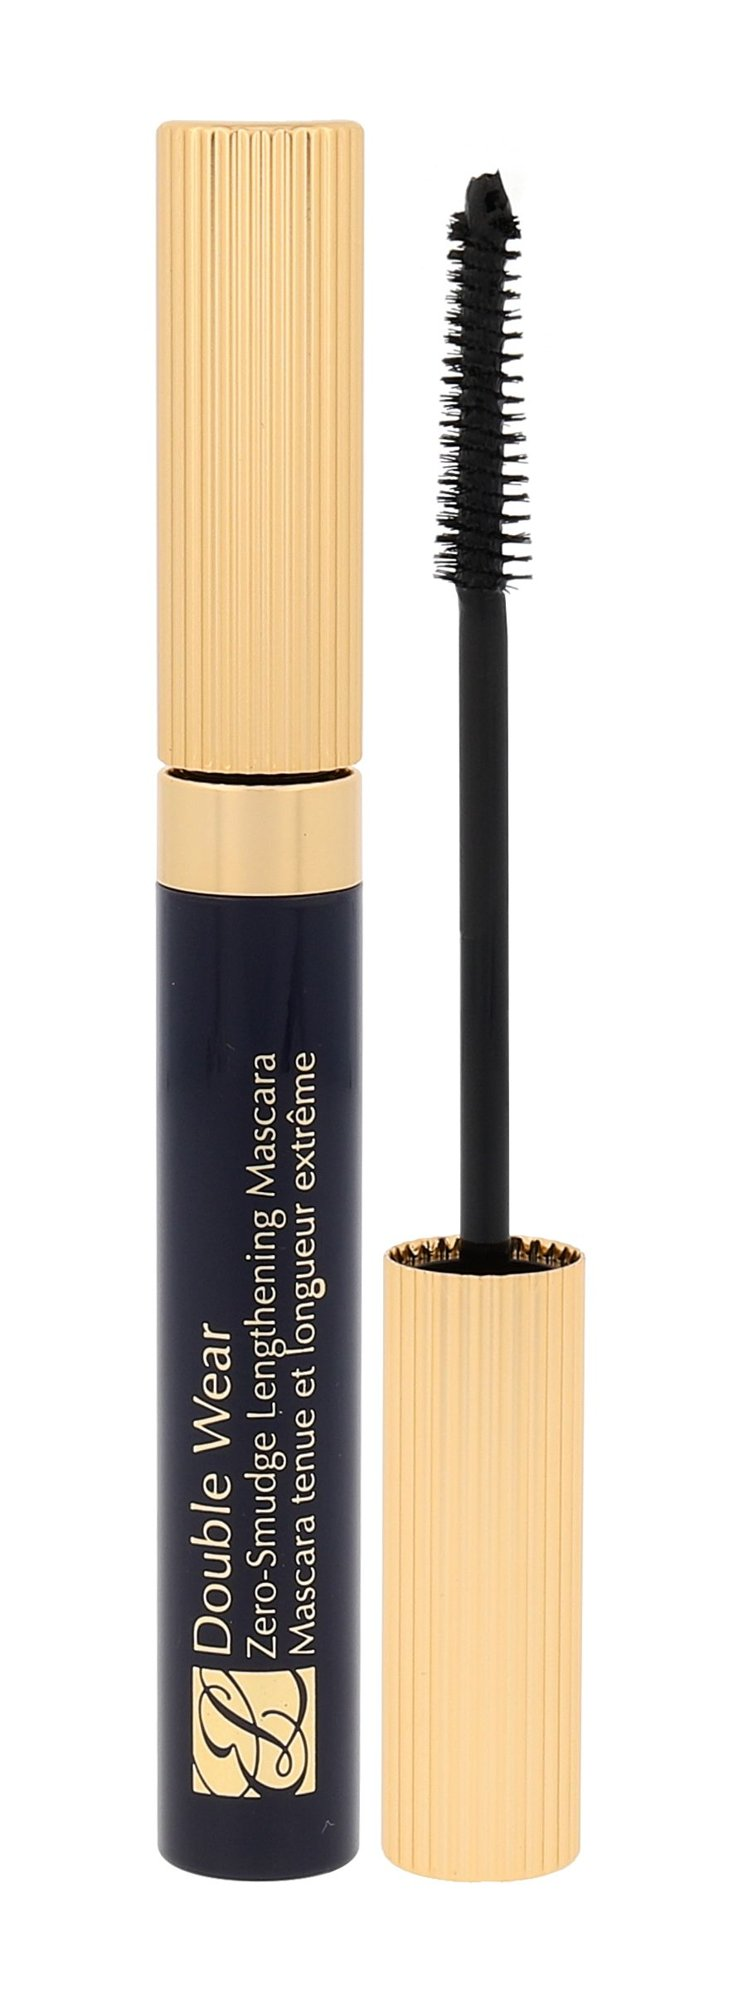 Estée Lauder Double Wear Mascara 6ml 01 Black